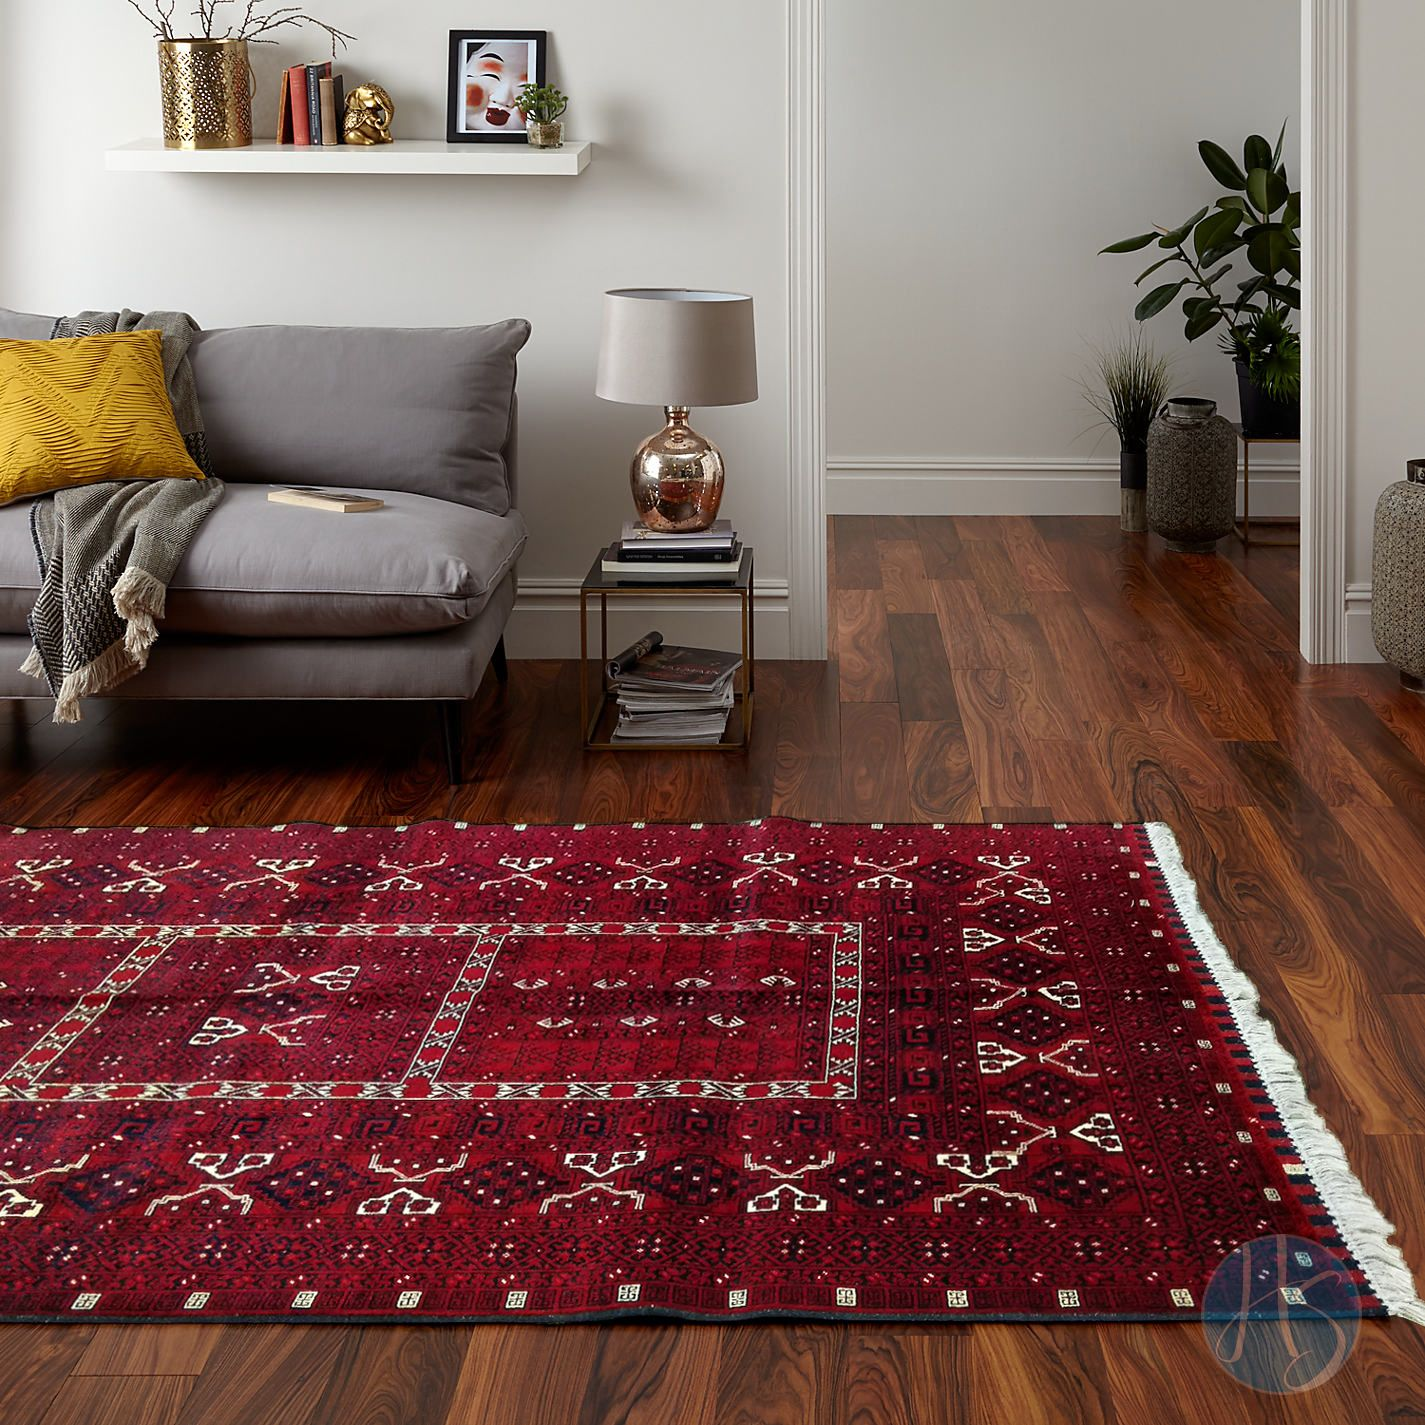 Rich Red Field With Dark Blue Orange And Beige Geometric Traditional Purdah Design This Persian Rug Living Room Rugs In Living Room Afghan Rugs Living Room